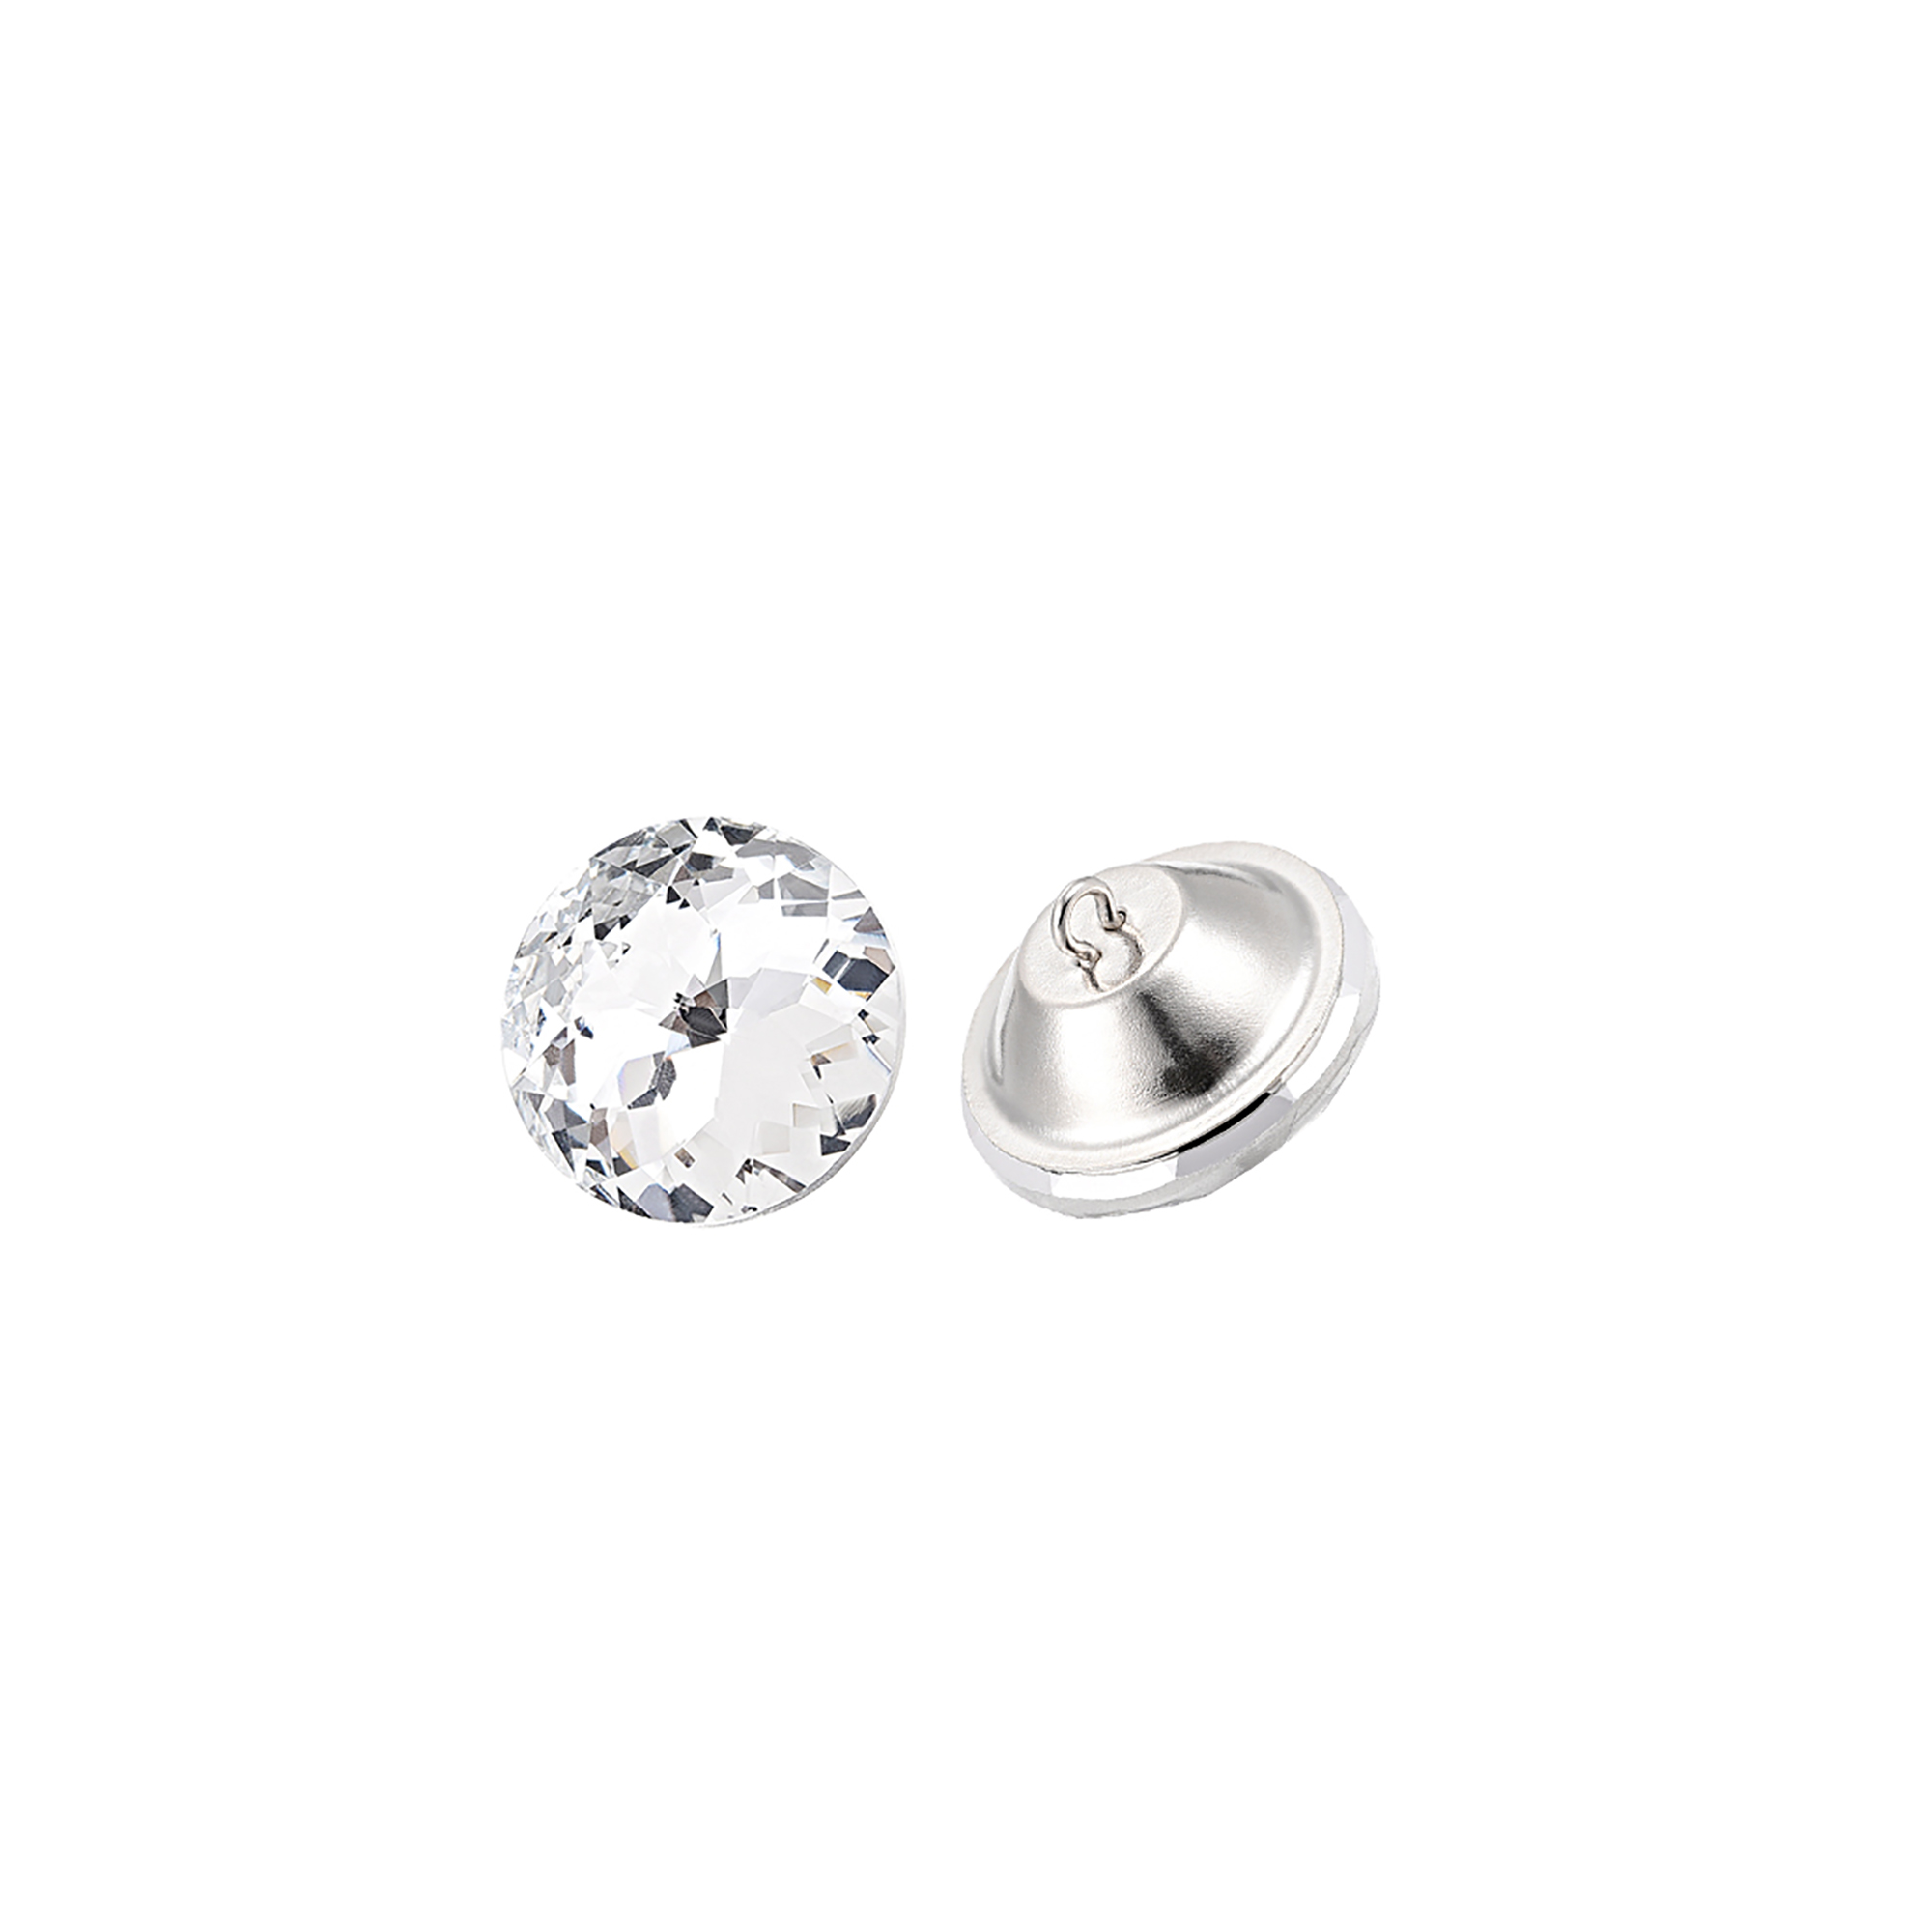 Crystal Upholstery Buttons 20mmx16mm for Sewing Sofa Bed ...